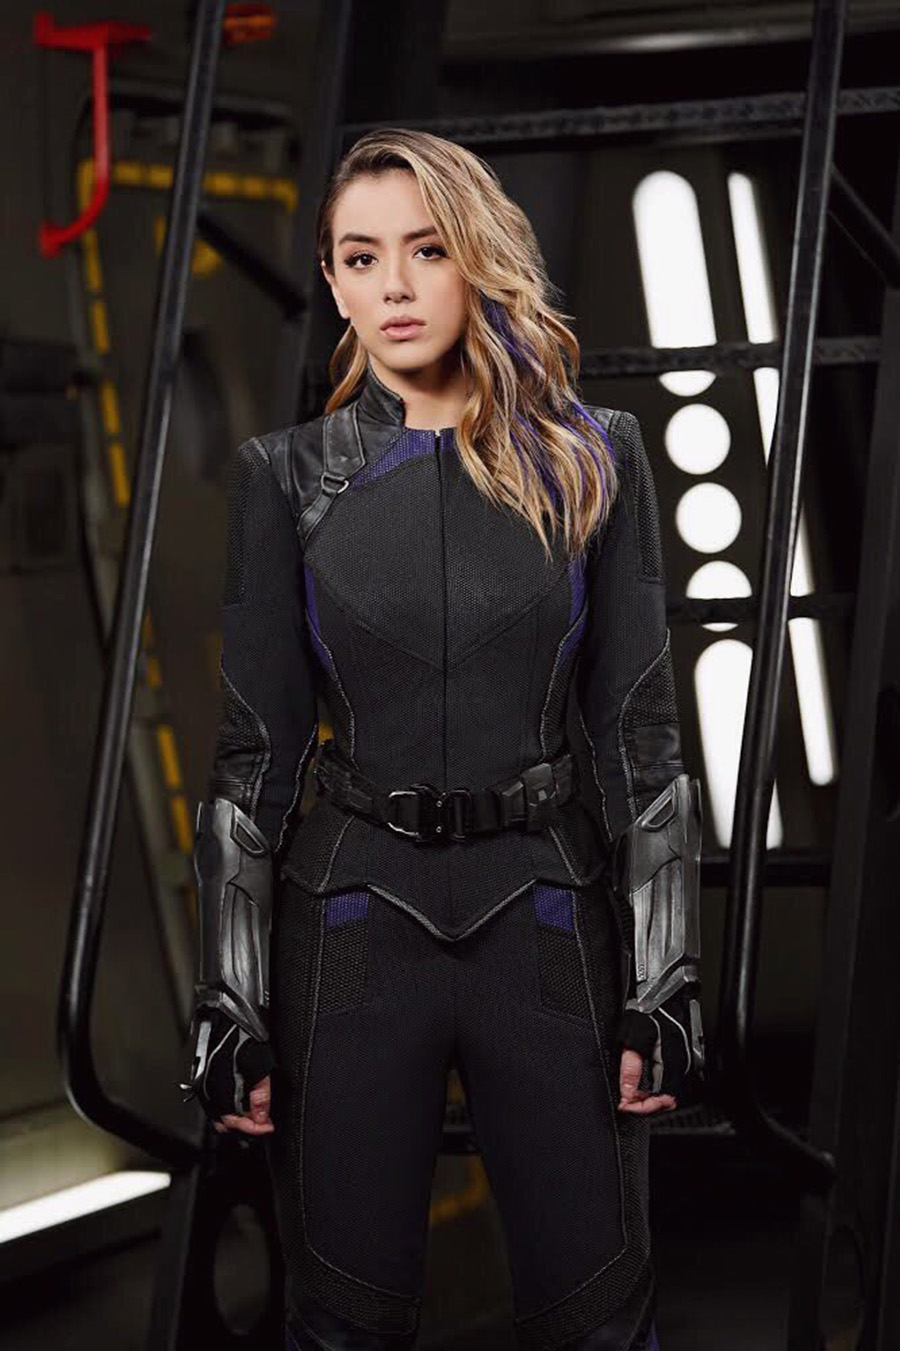 Chloe Bennet revela novo visual de Quake na 6ª temporada de Agents of SHIELD